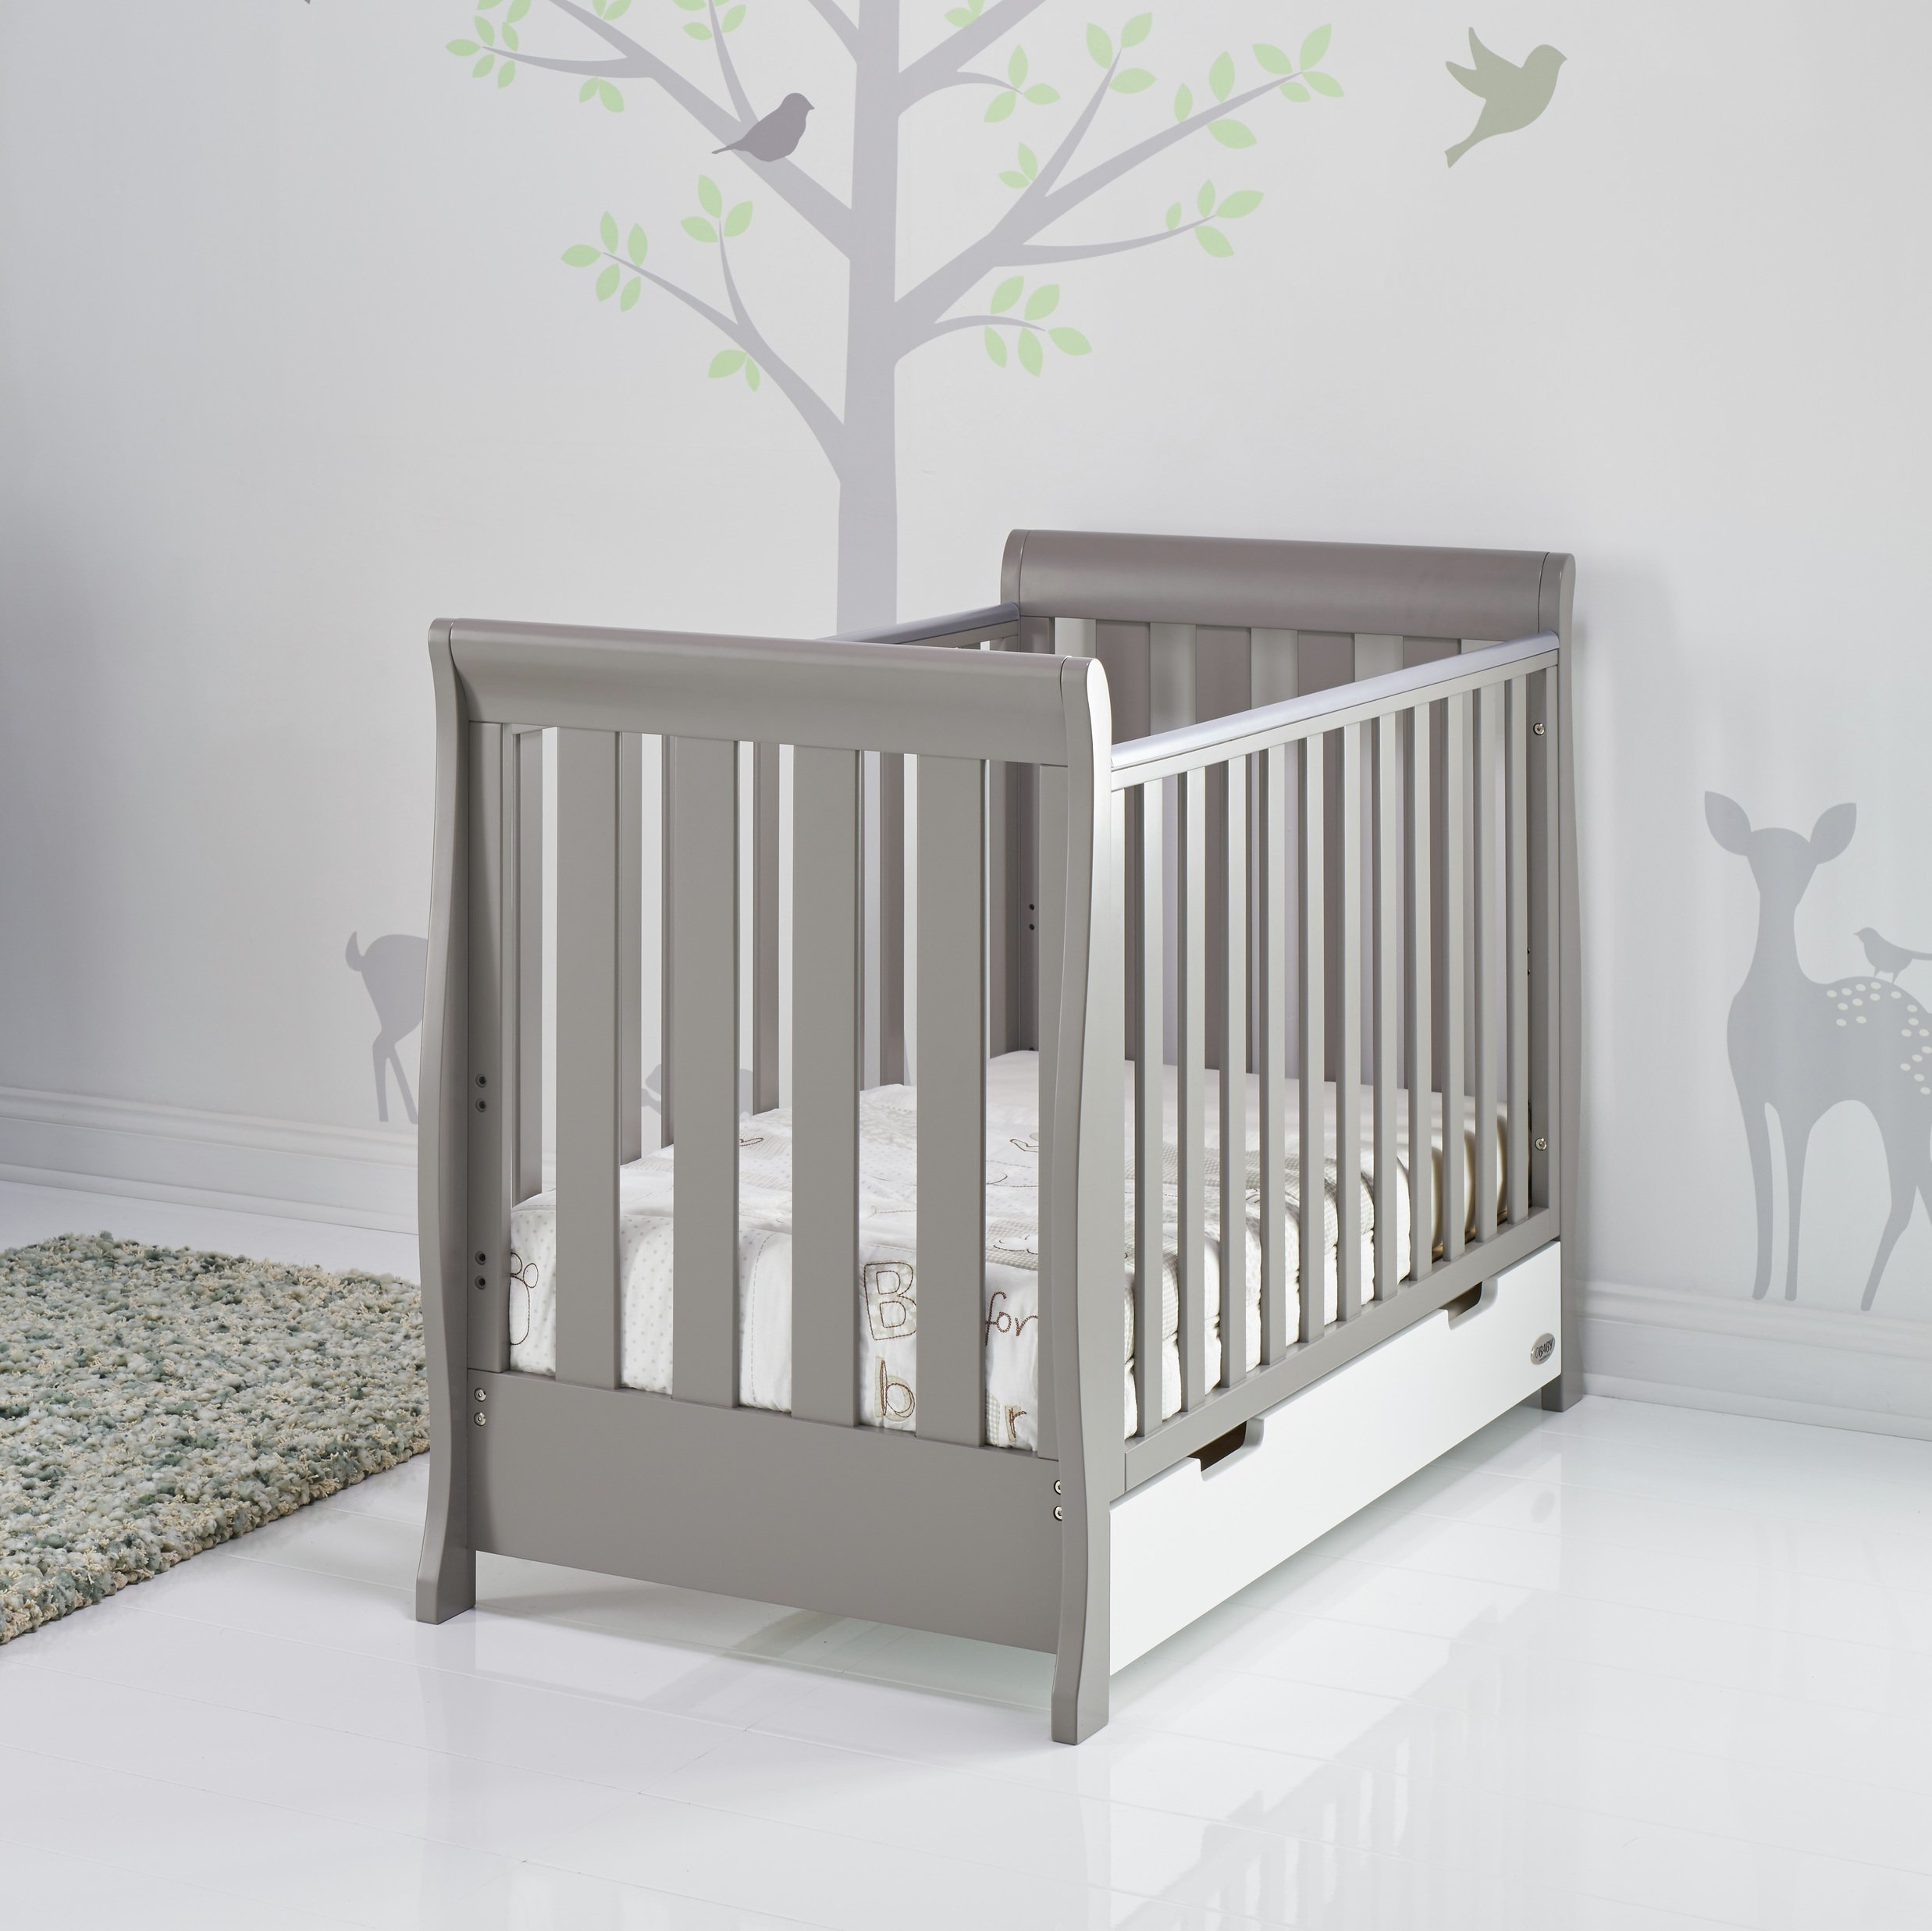 Obaby Stamford Mini Sleigh Cot Bed - Taupe Grey & White